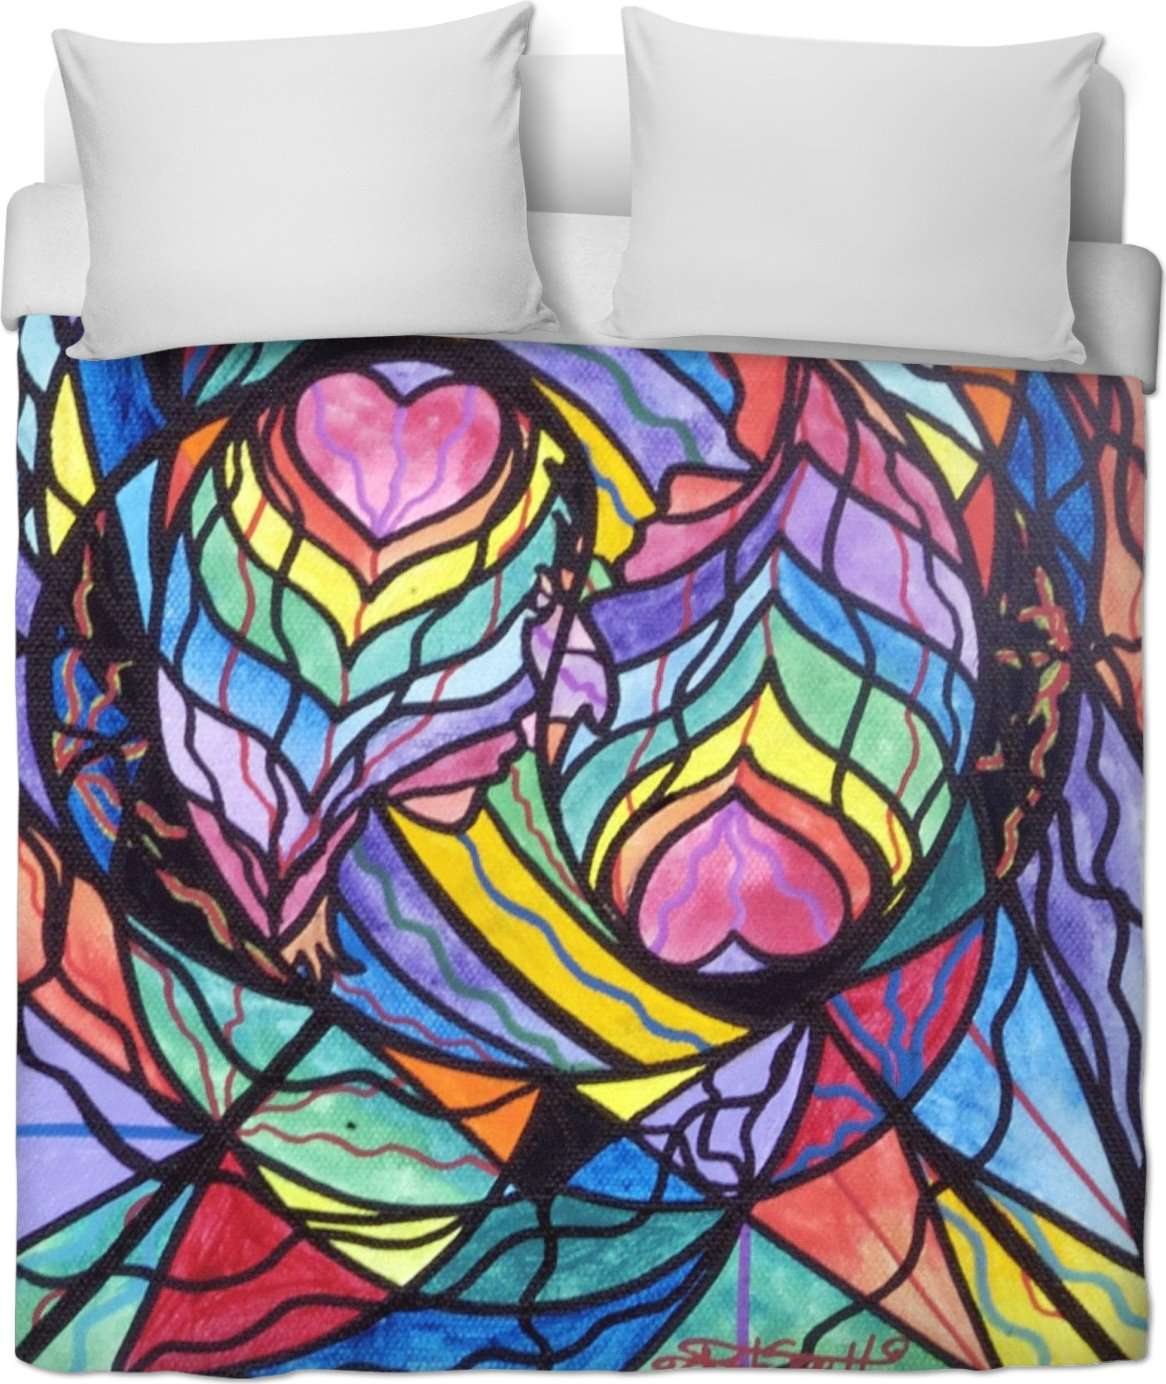 Authentic Relationship - Duvet Cover